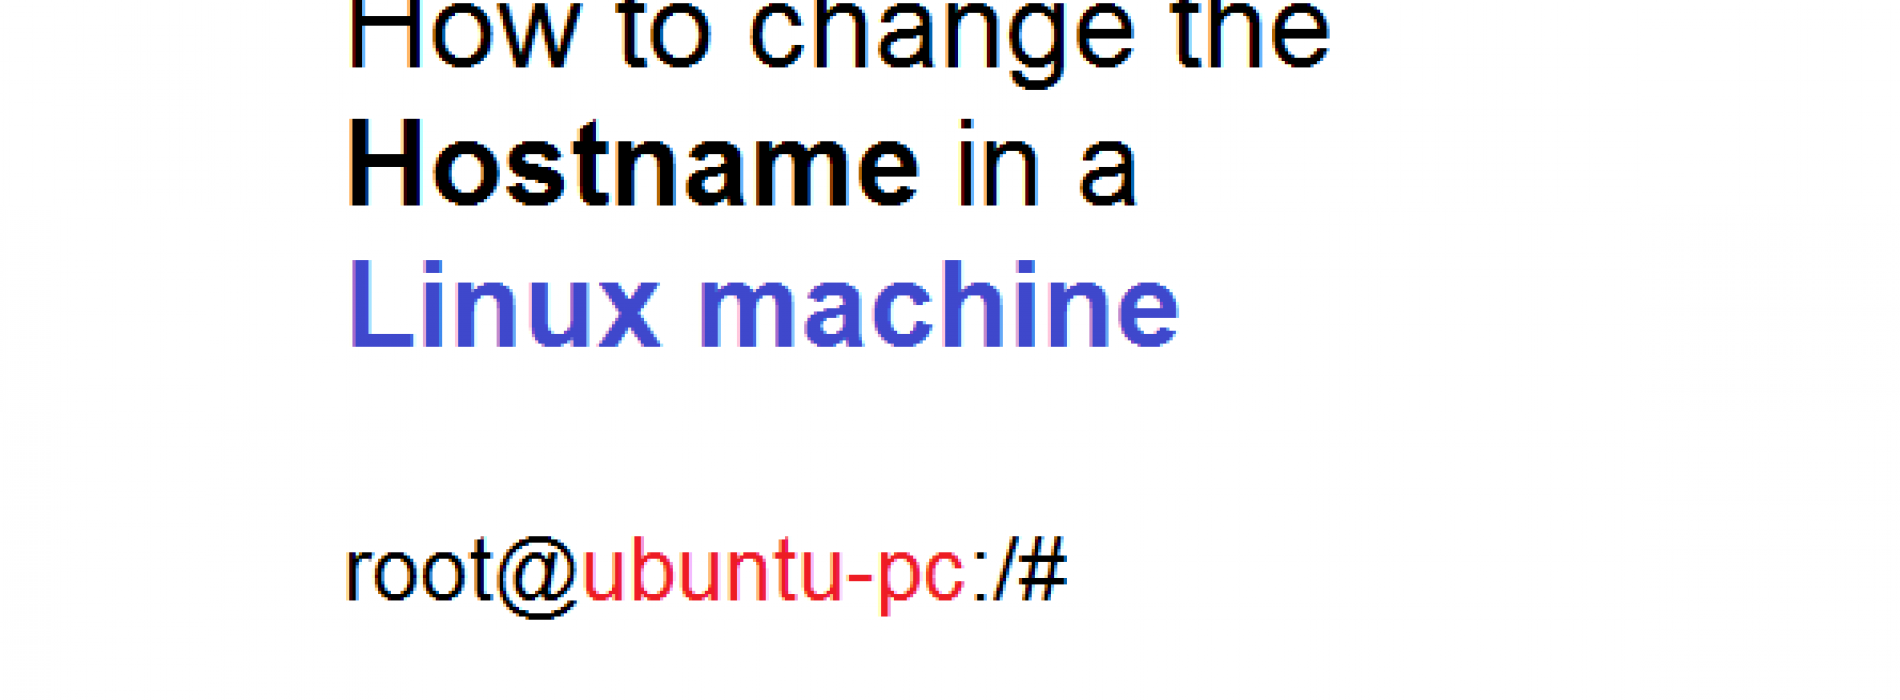 How to Change the Hostname on a Linux Machine